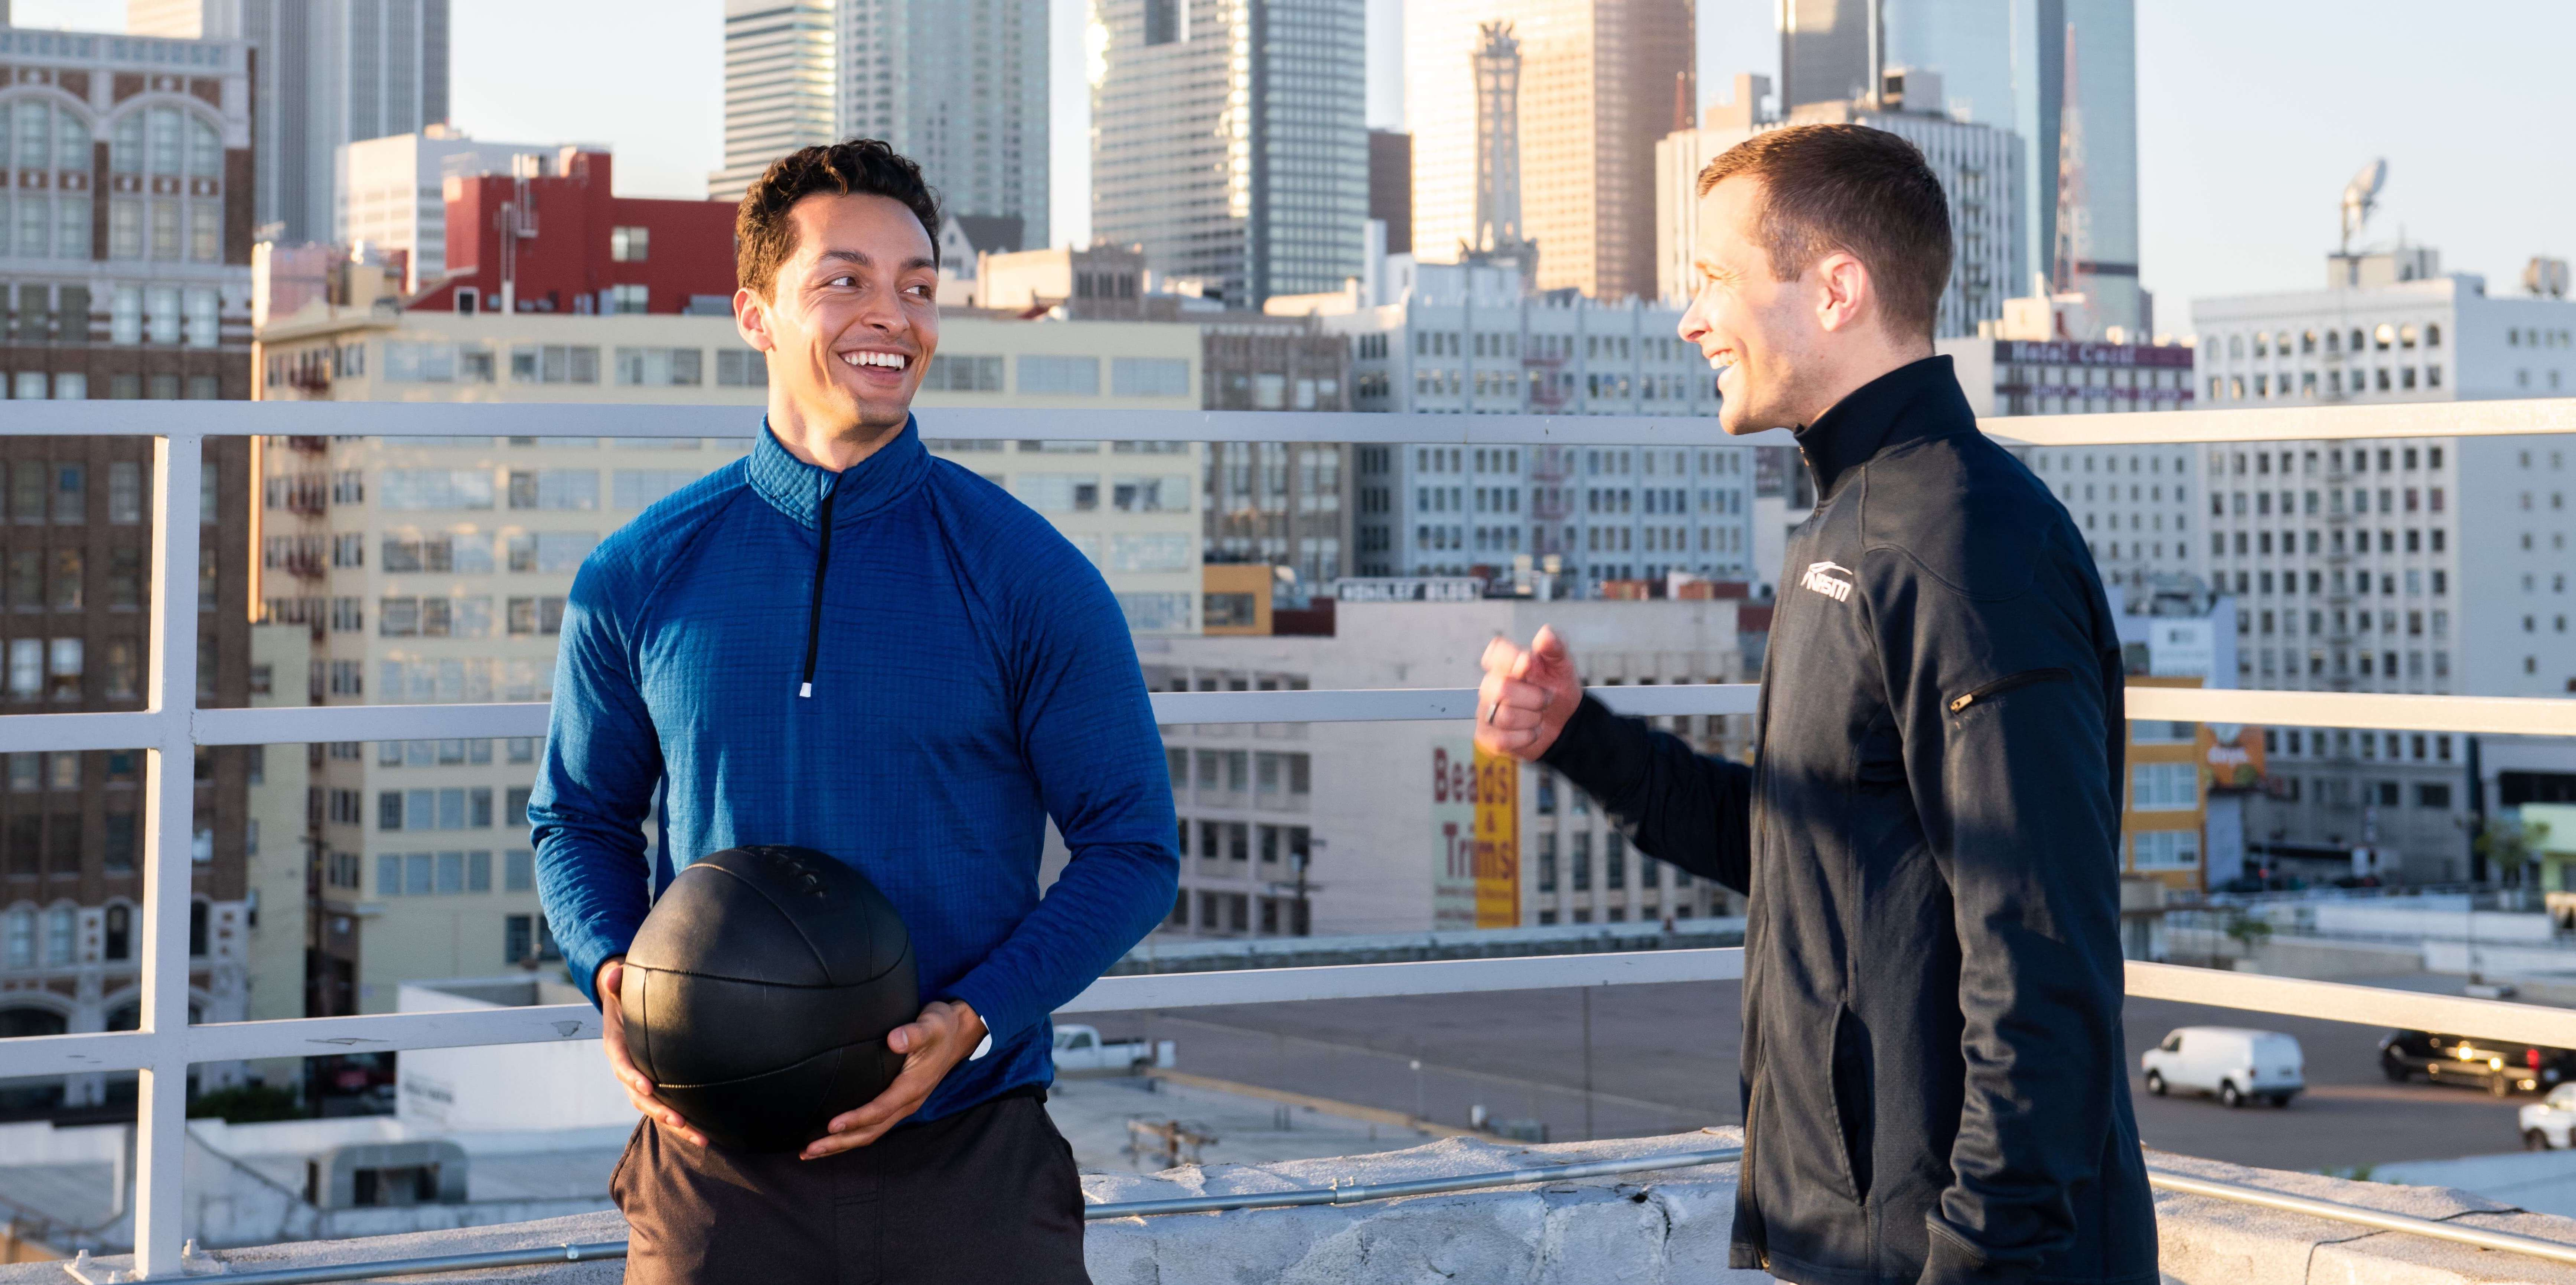 Personal trainer talking to client holding medicine ball